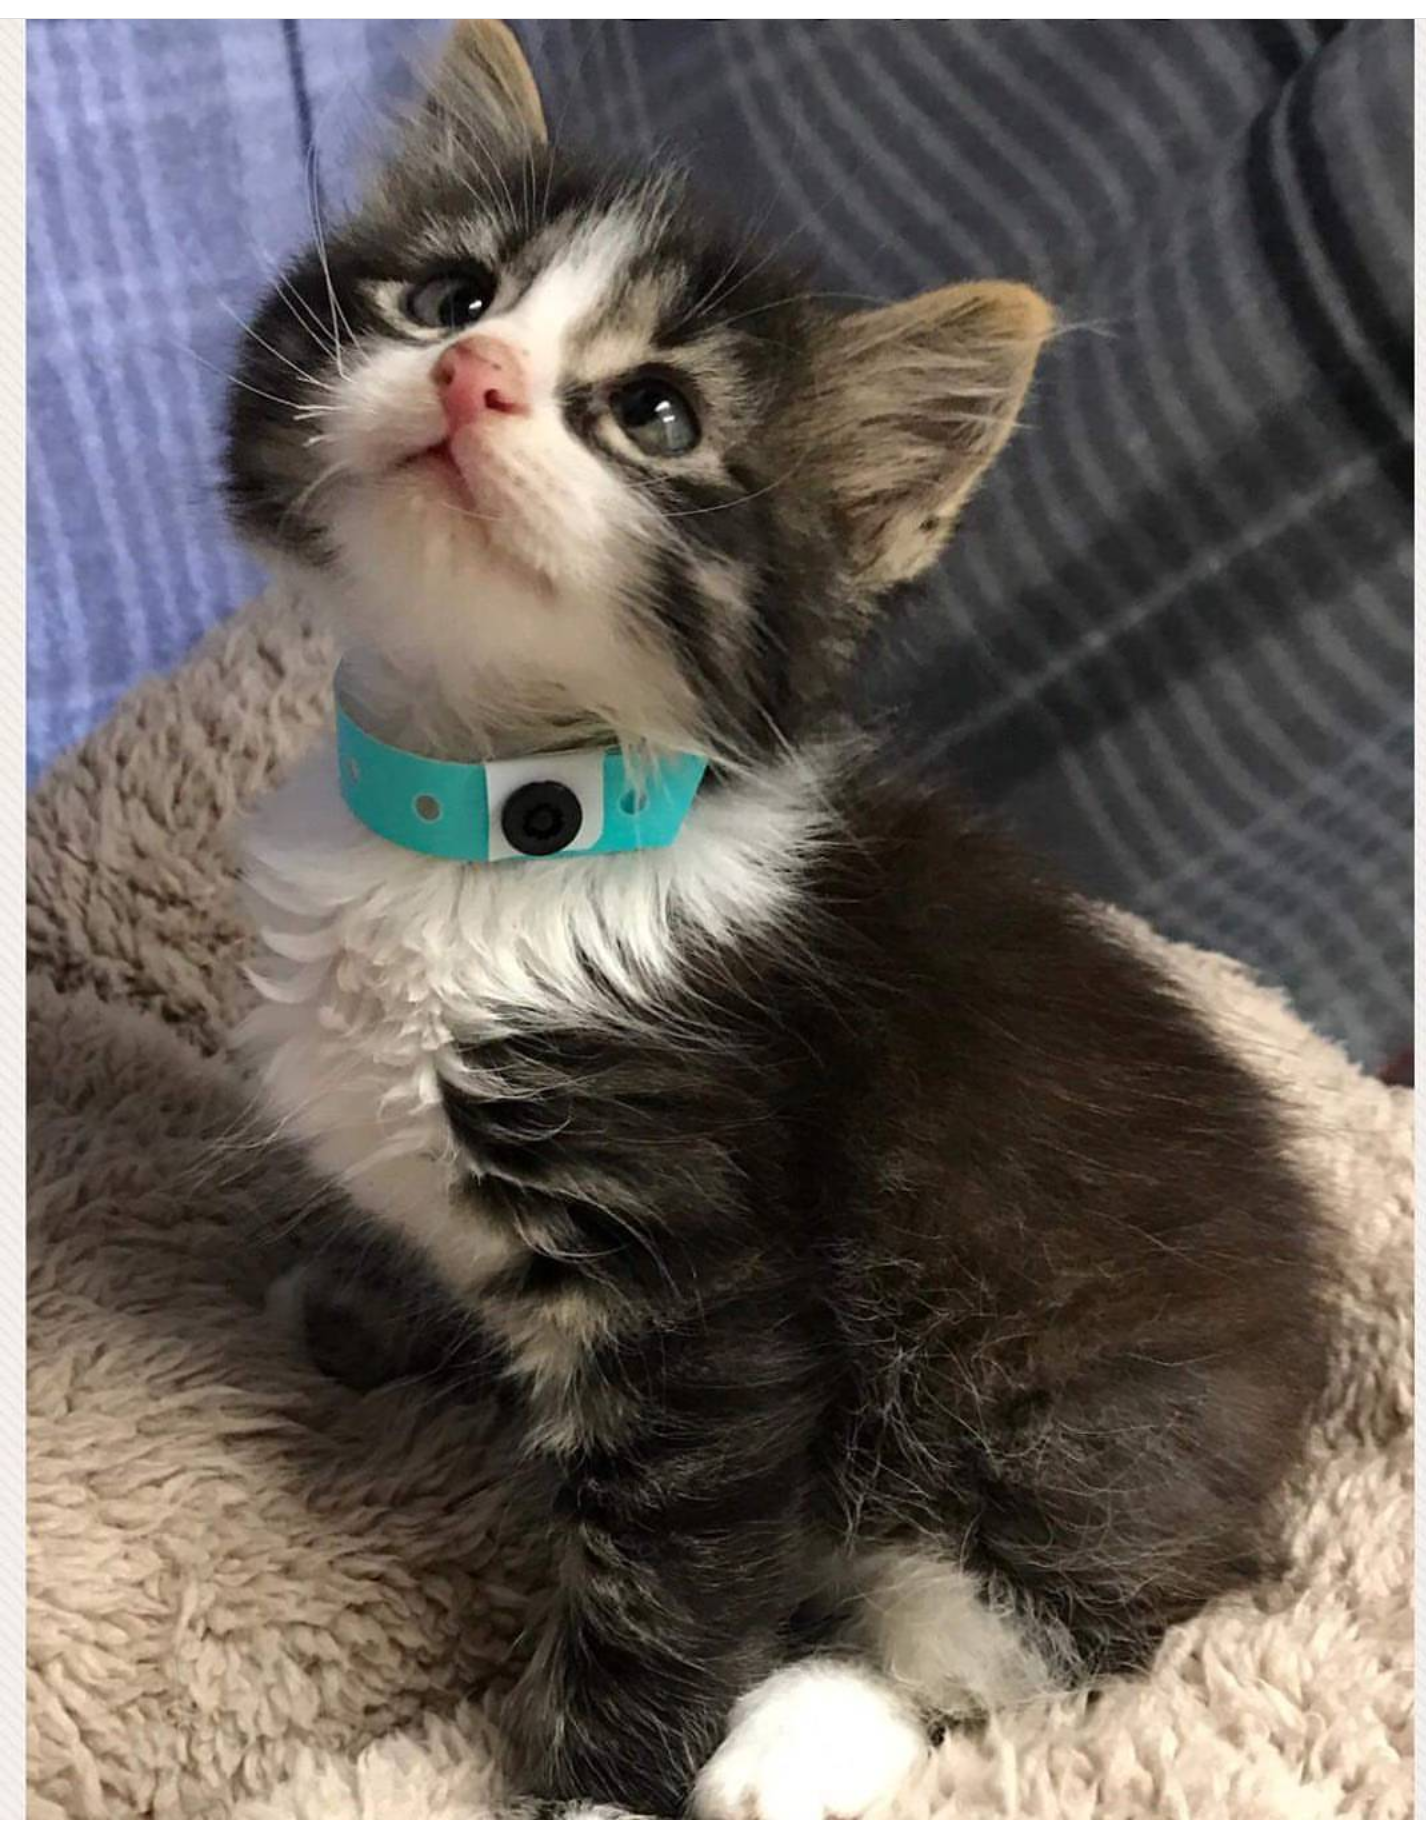 Derp the crosseyed kitten waited for 23weeks at a shelter